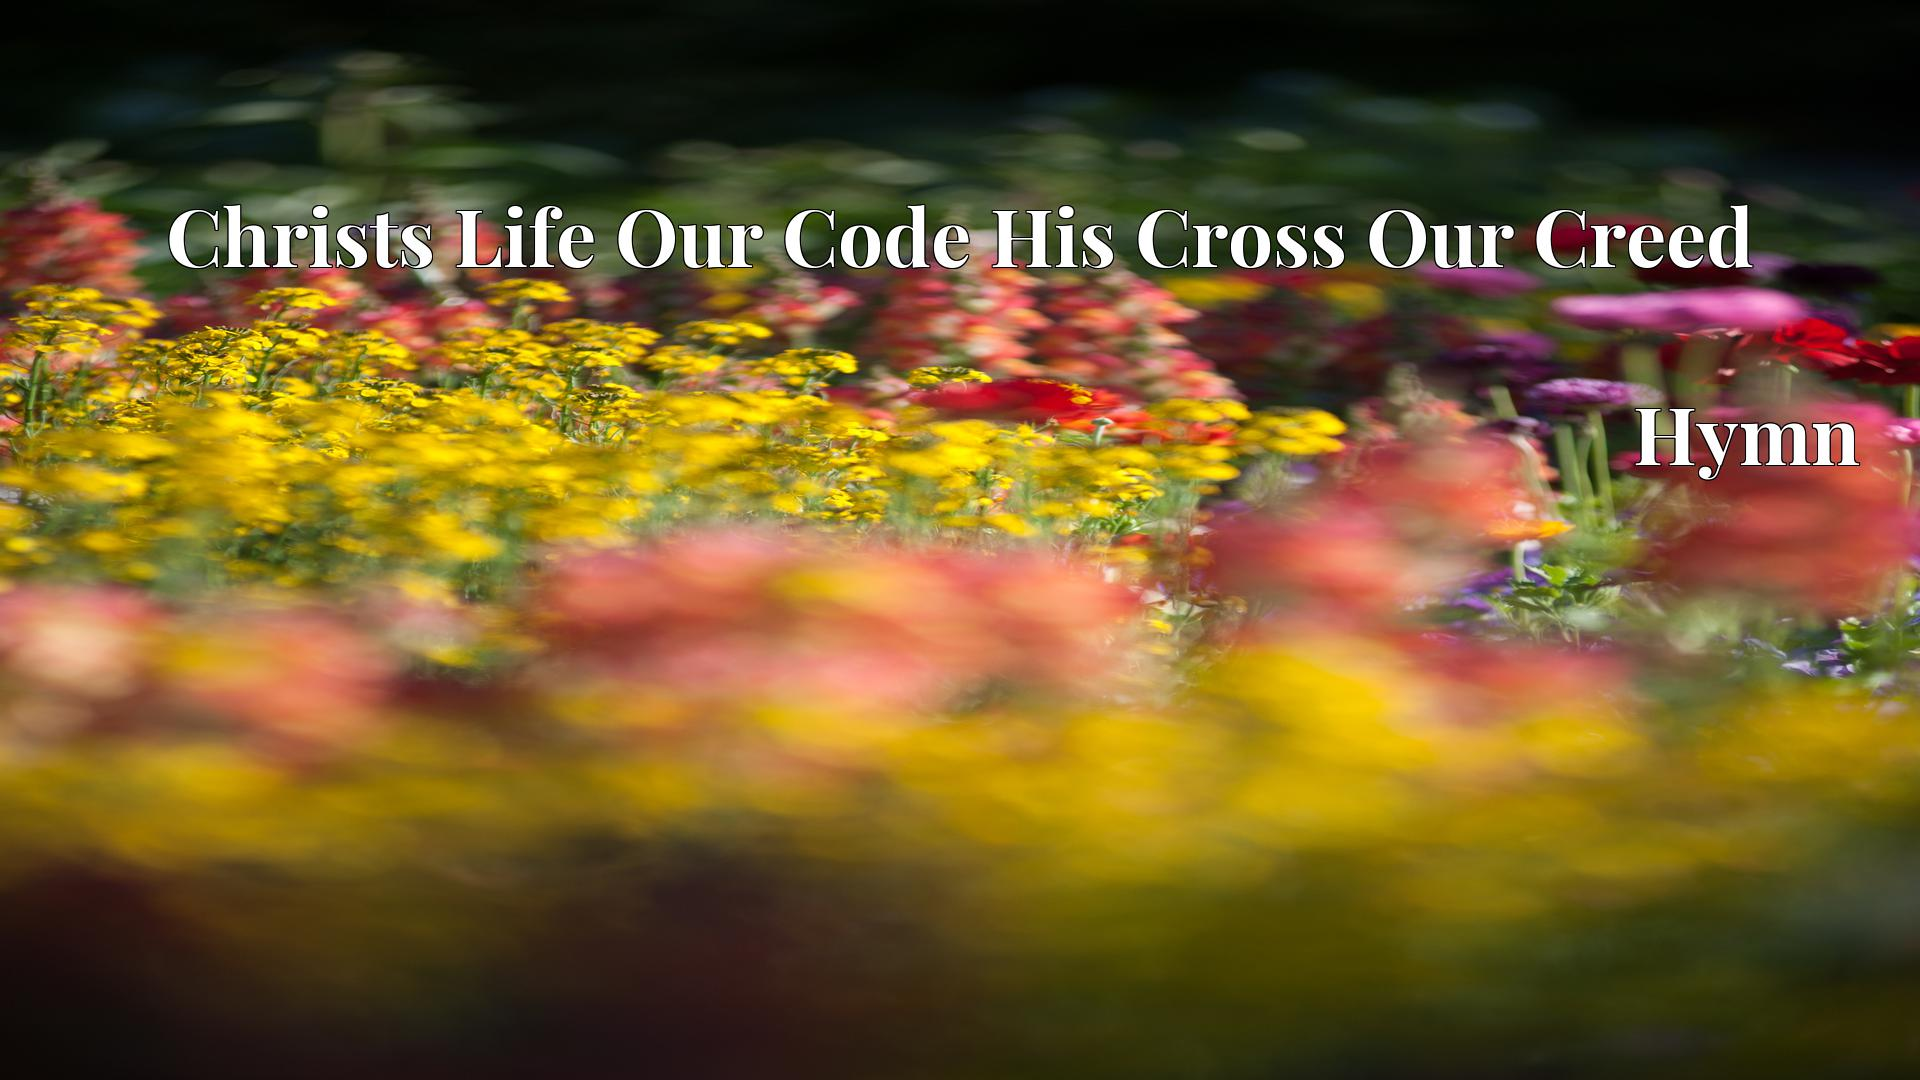 Christs Life Our Code His Cross Our Creed - Hymn